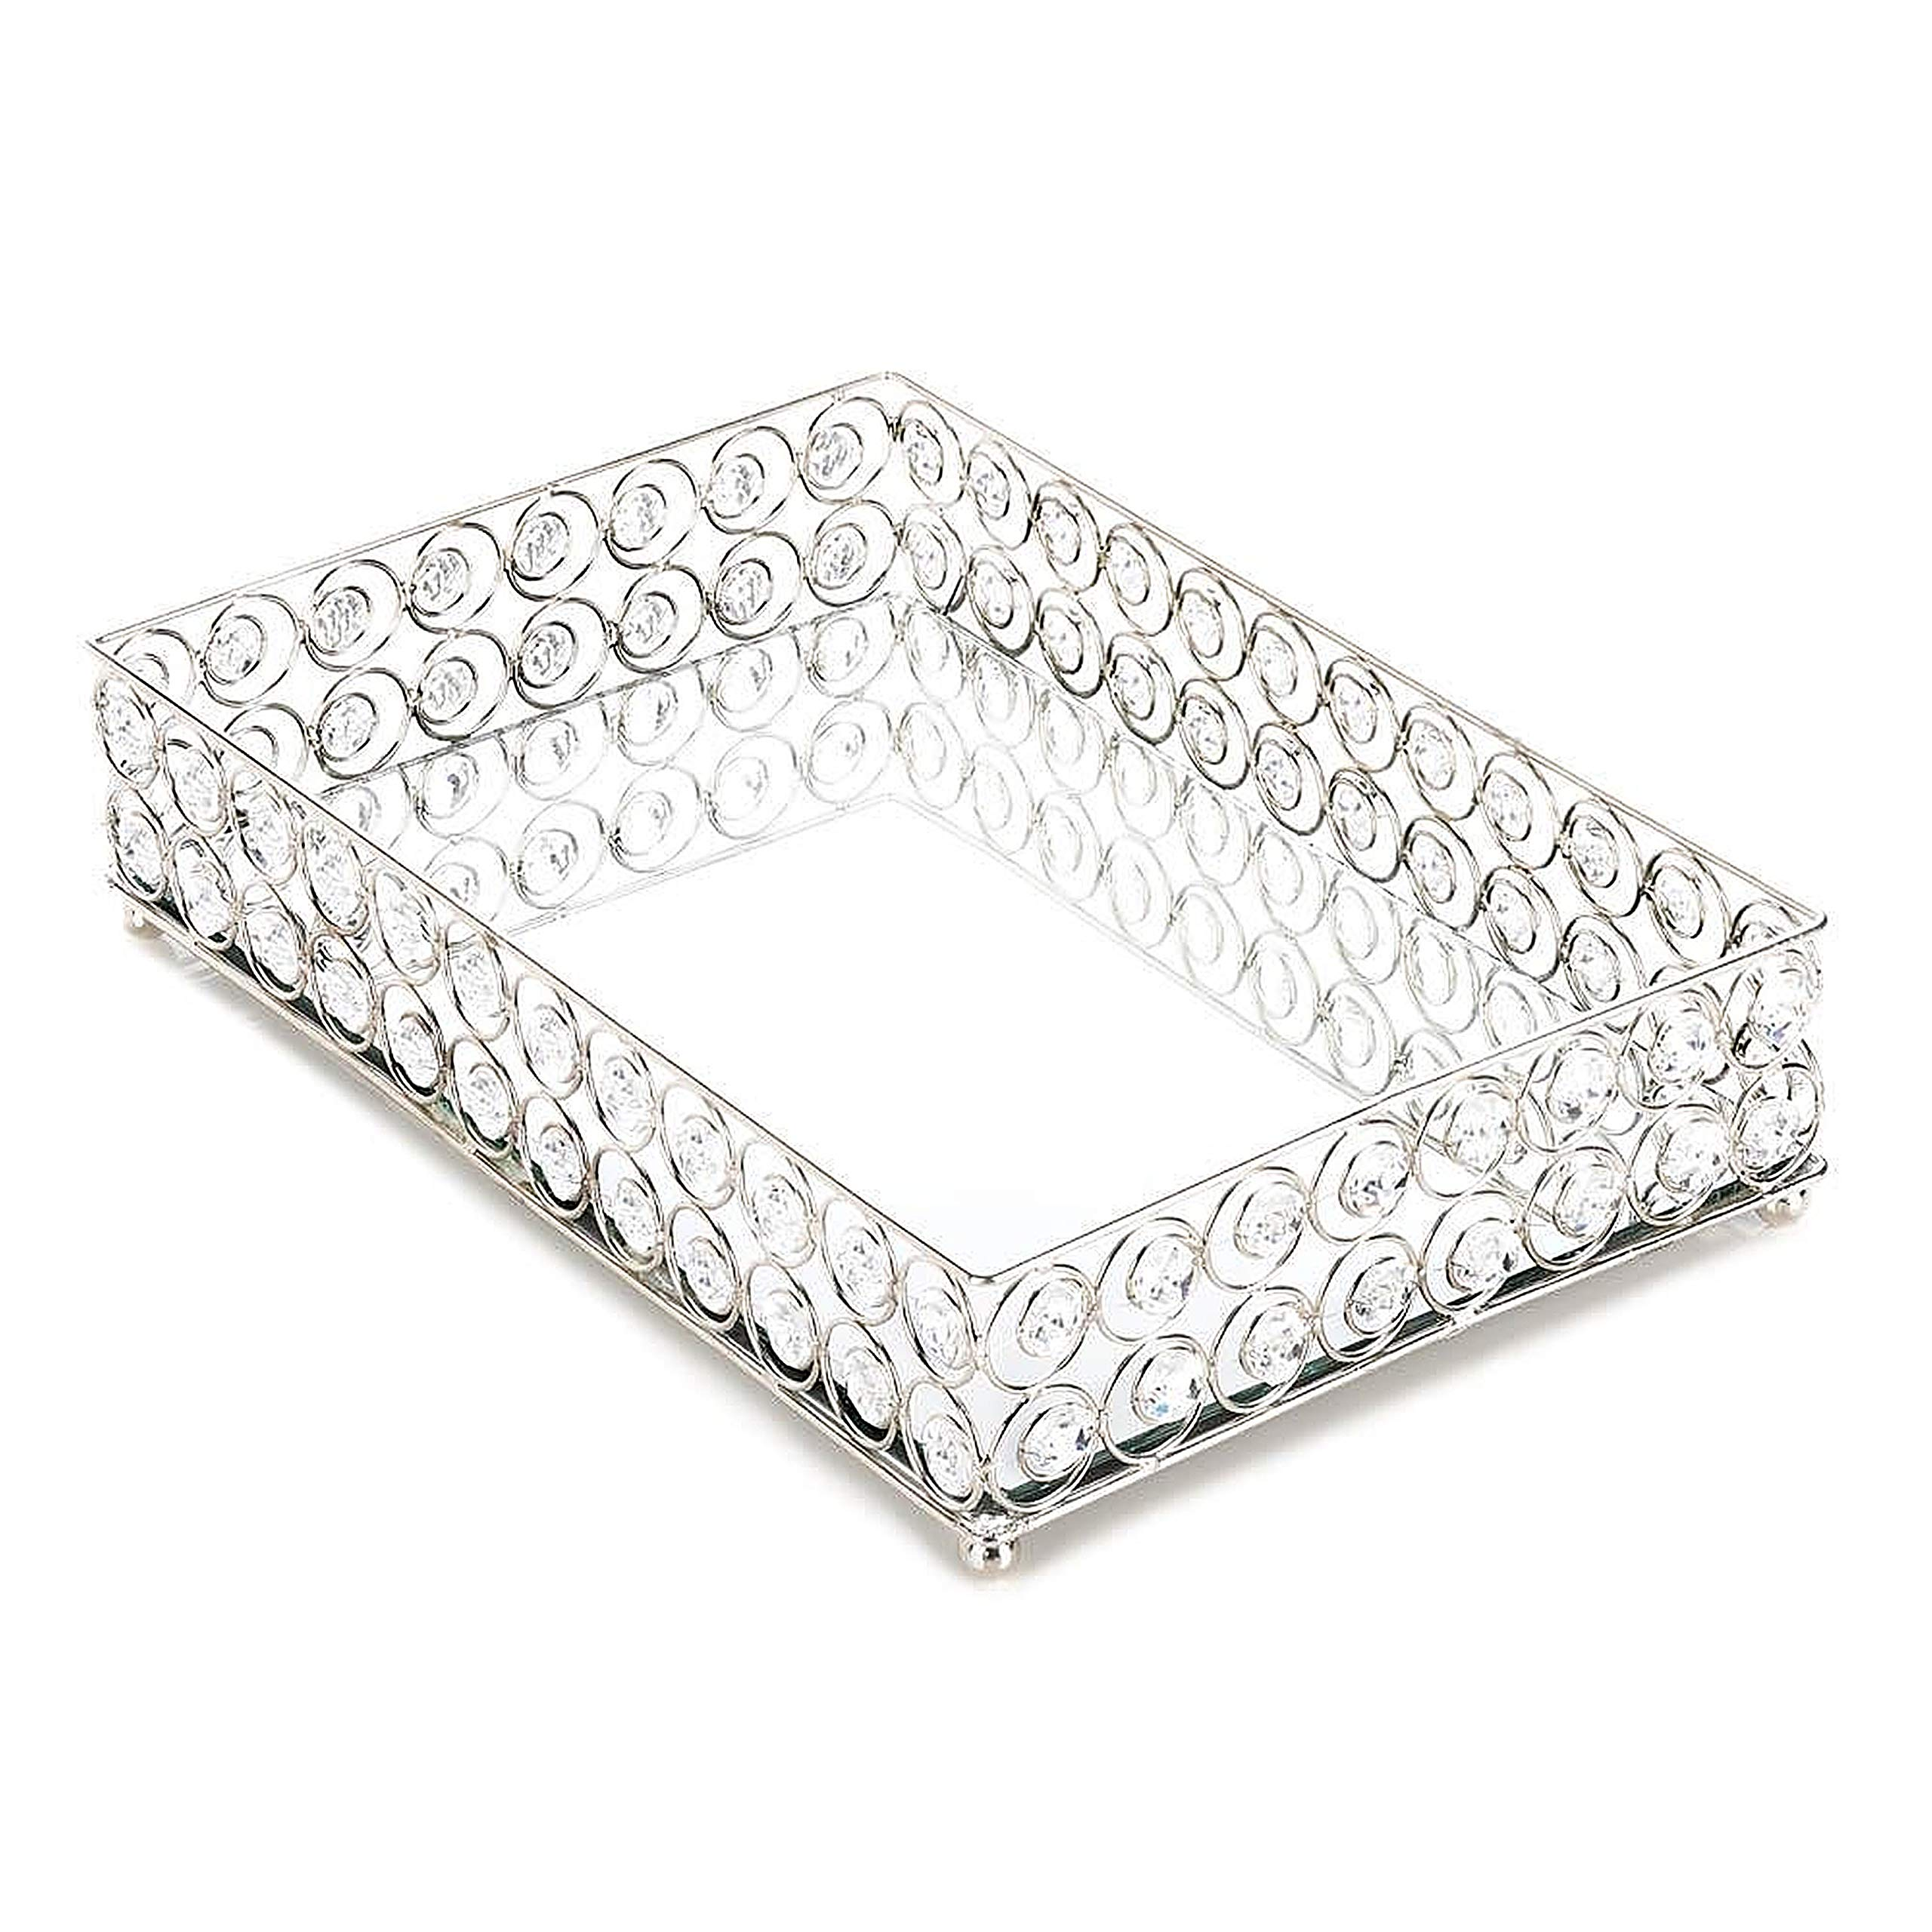 Bathroom Mirrored Tray, Rectangle Metal Vanity Trays Elegant Jewelry Perfume Cosmetics Organizer with Crystal Beads Silver Decorative Mirror Ornate Accent Tray for Bedroom